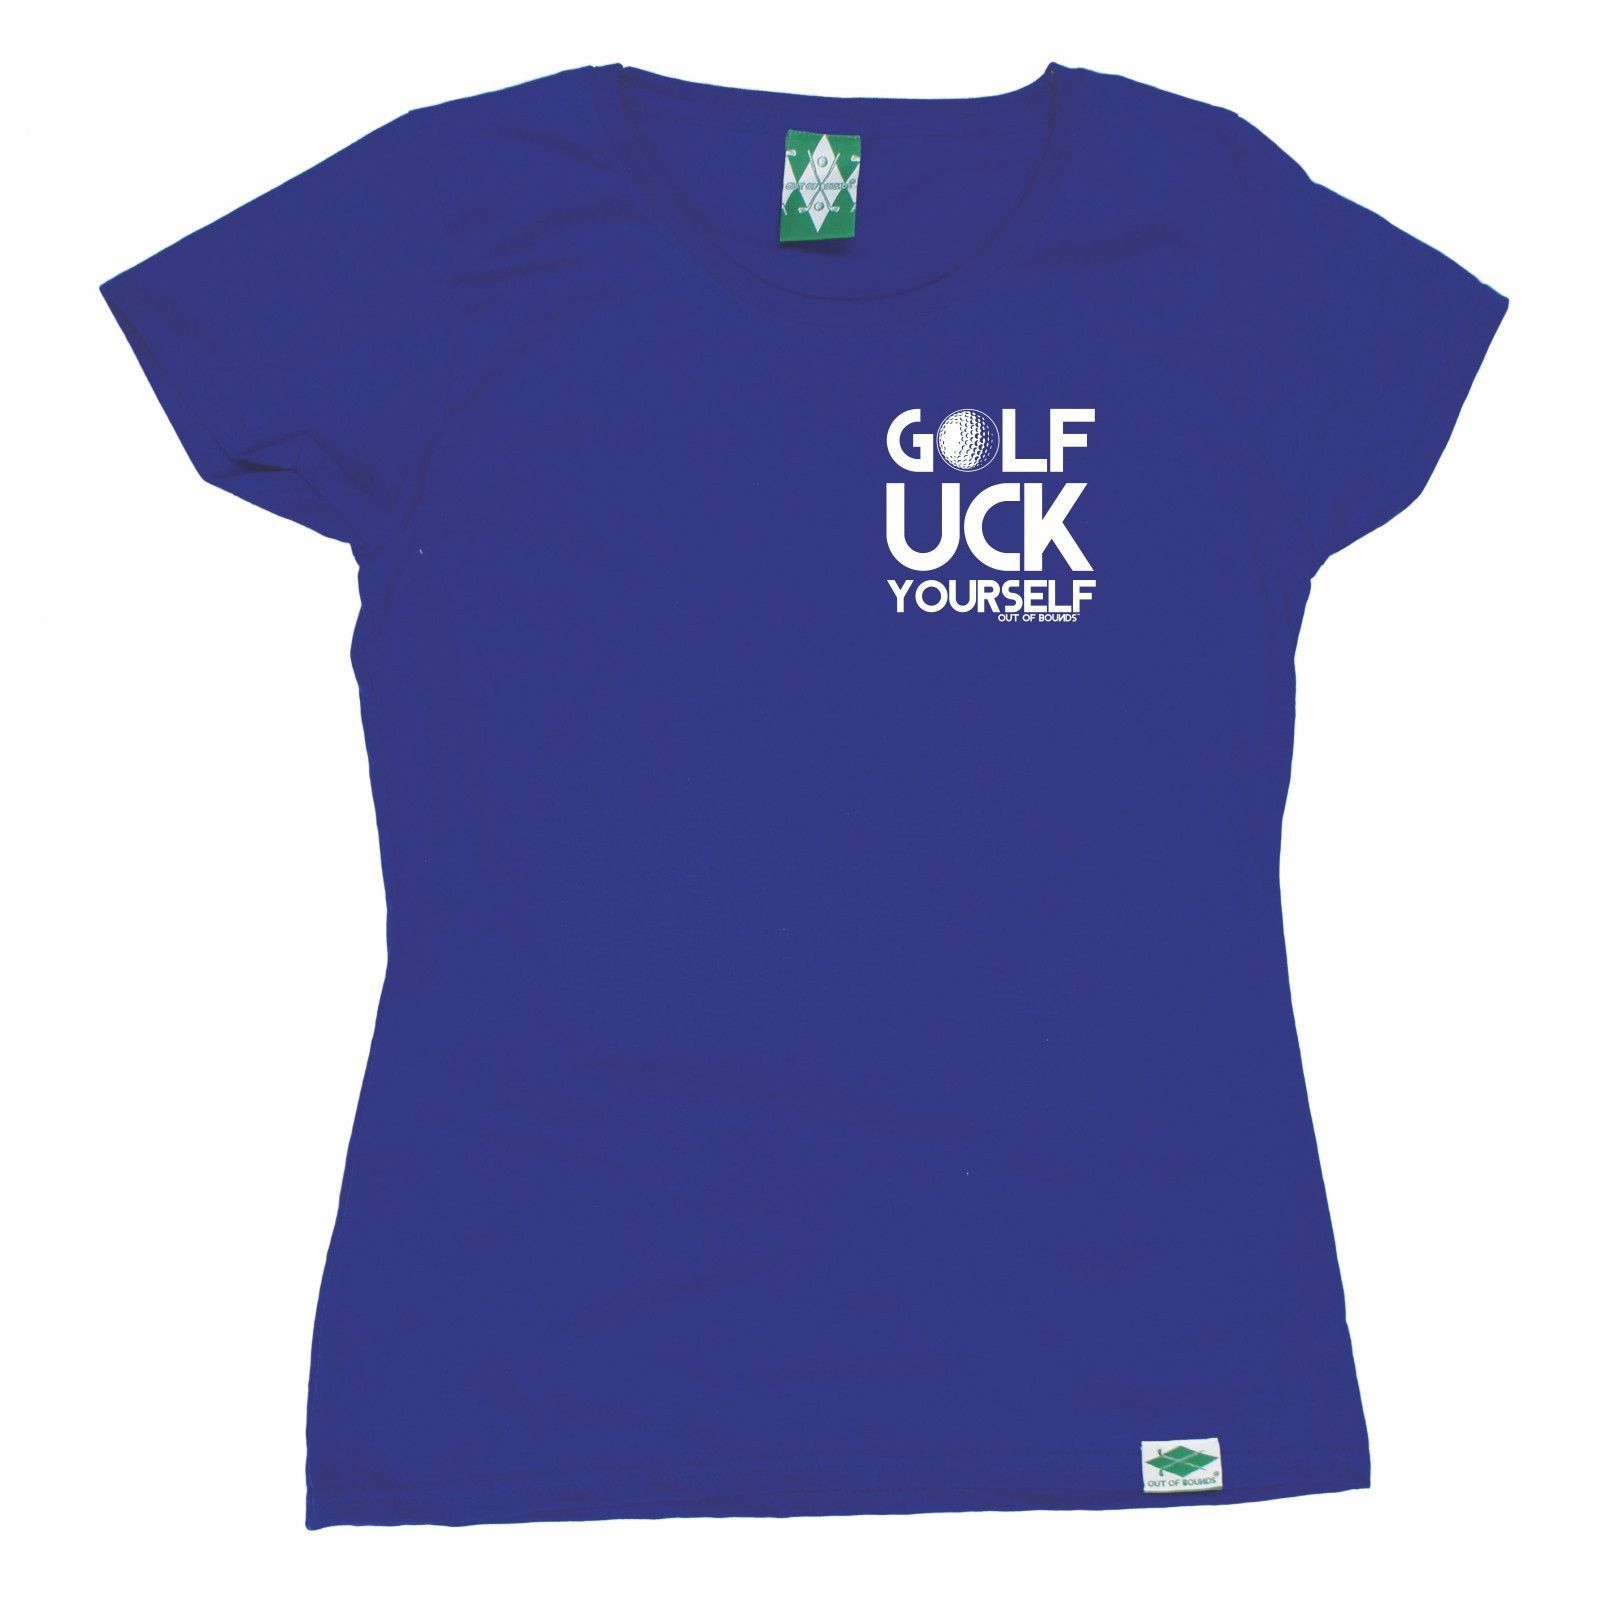 Out Of Bounds Women's Golf Uck Yourself Breast Pocket Golfing T-Shirt